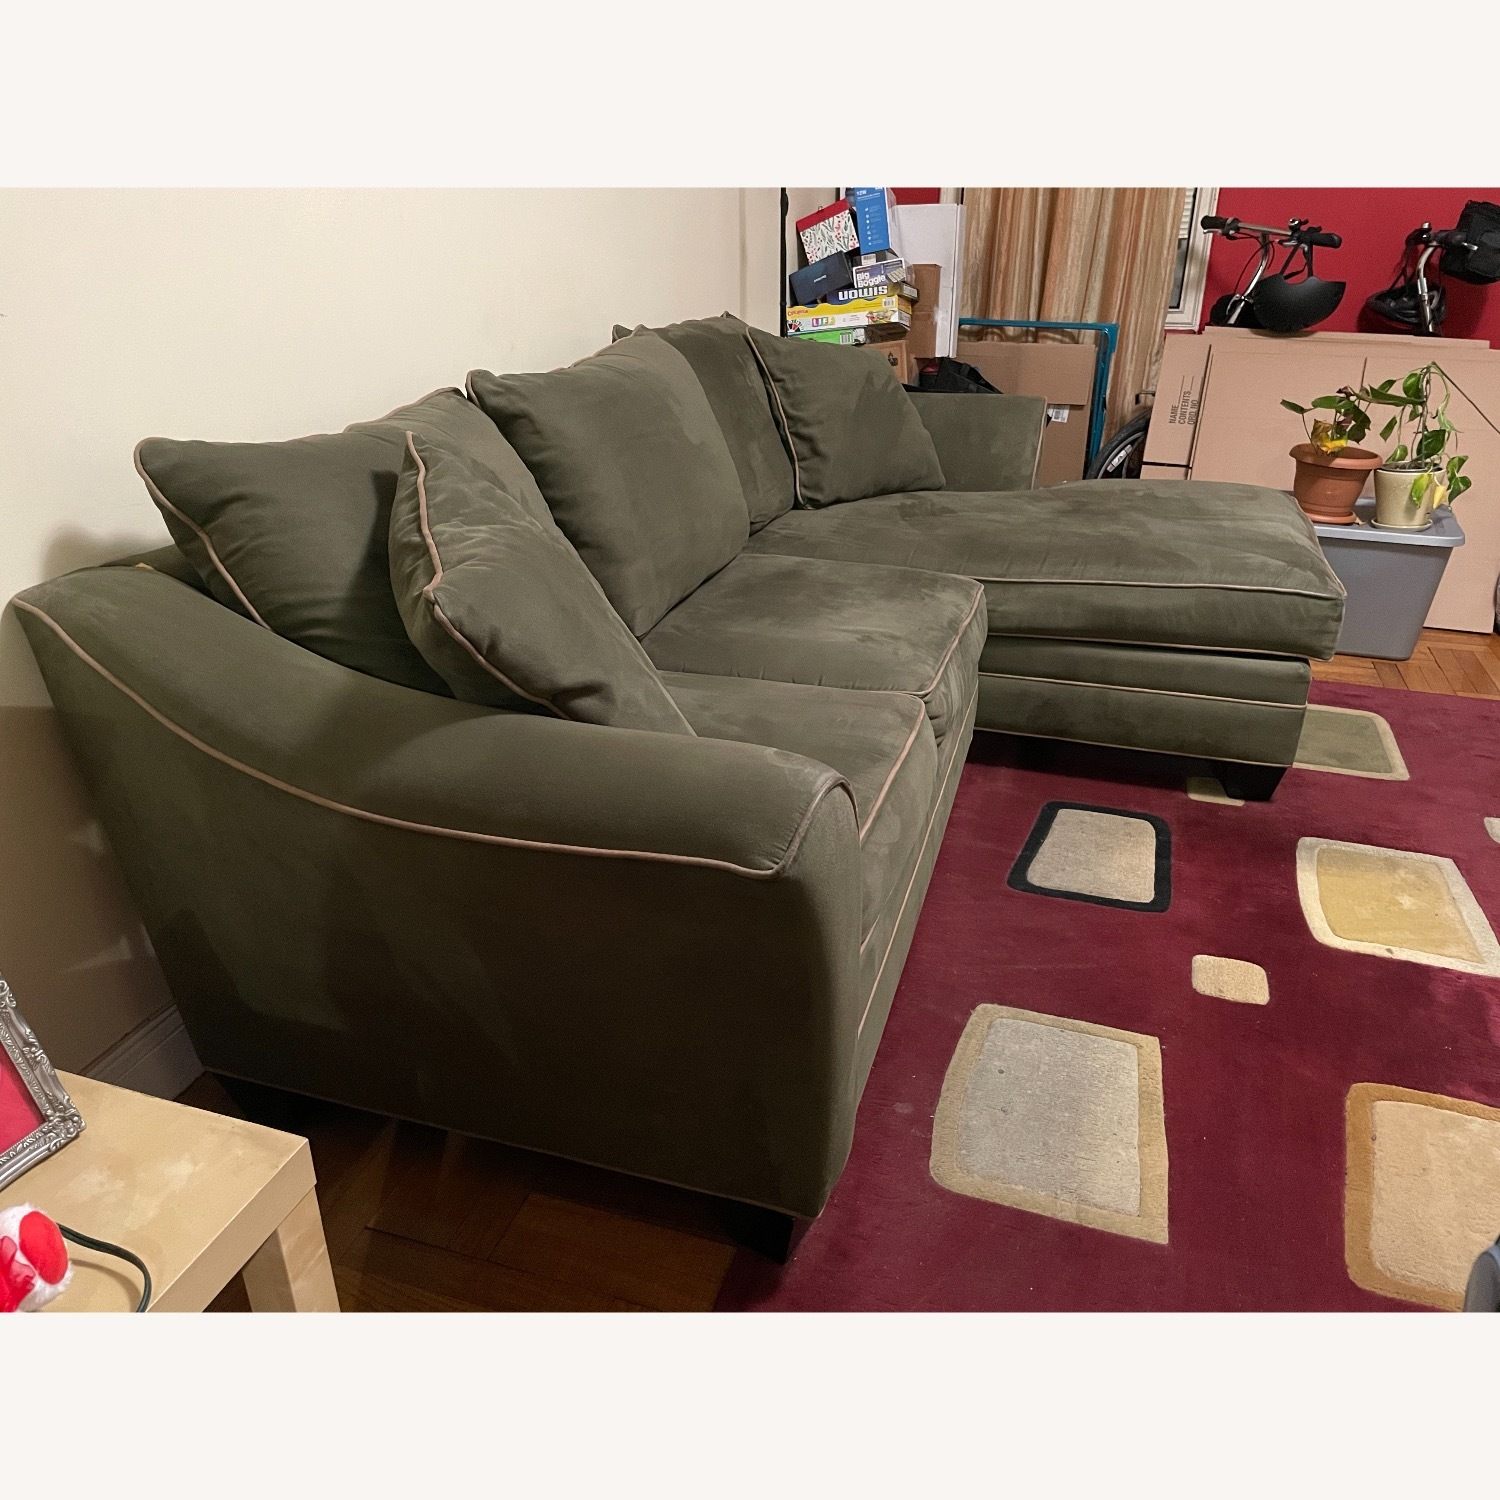 Raymour & Flanigan Foresthill 2-pc.  Sectional Sofa - image-2